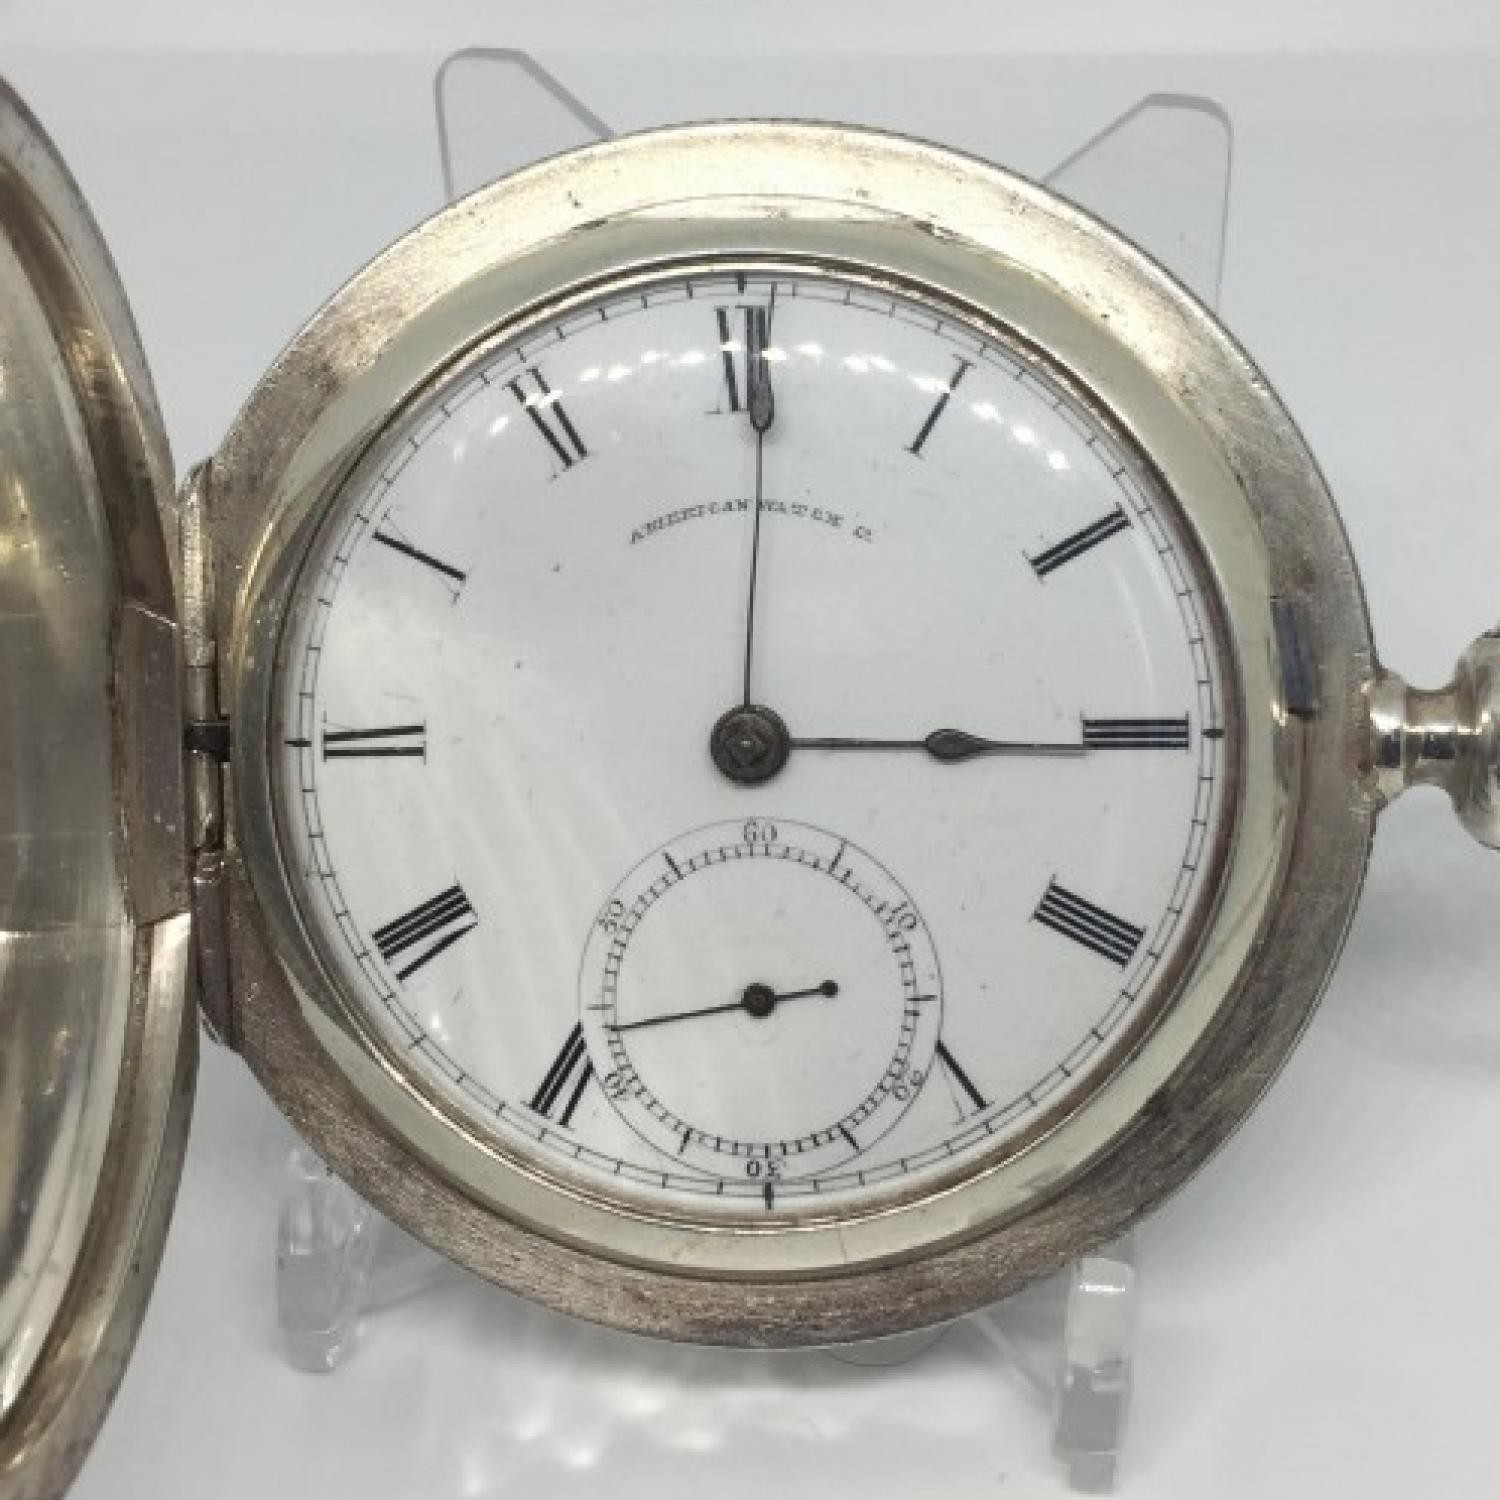 Image of Waltham P.S. Bartlett #292986 Dial